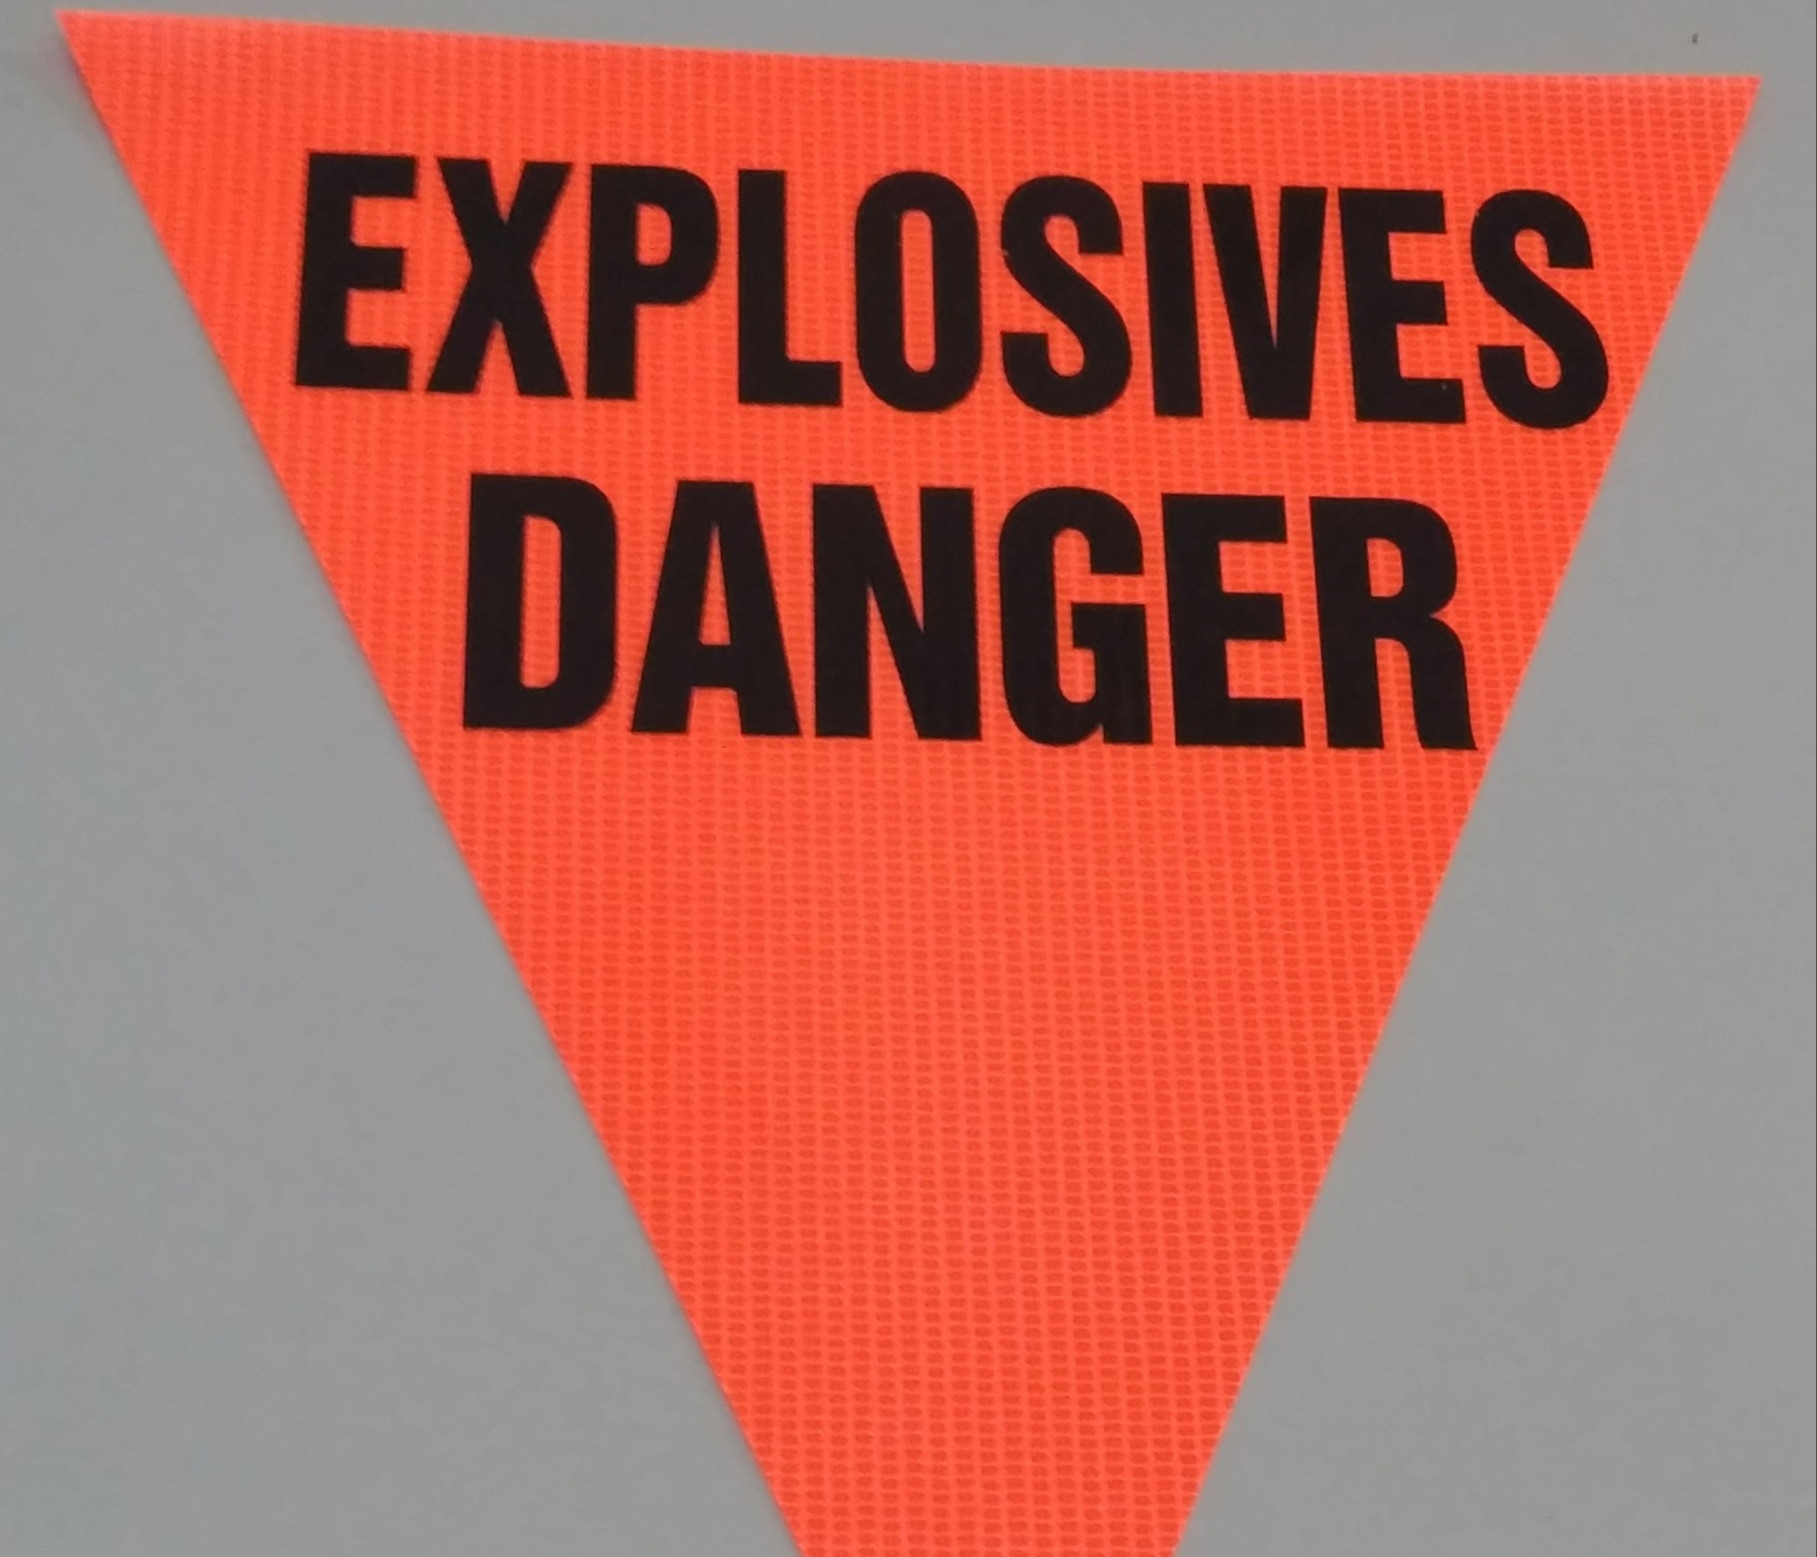 Explosives Danger (orange)